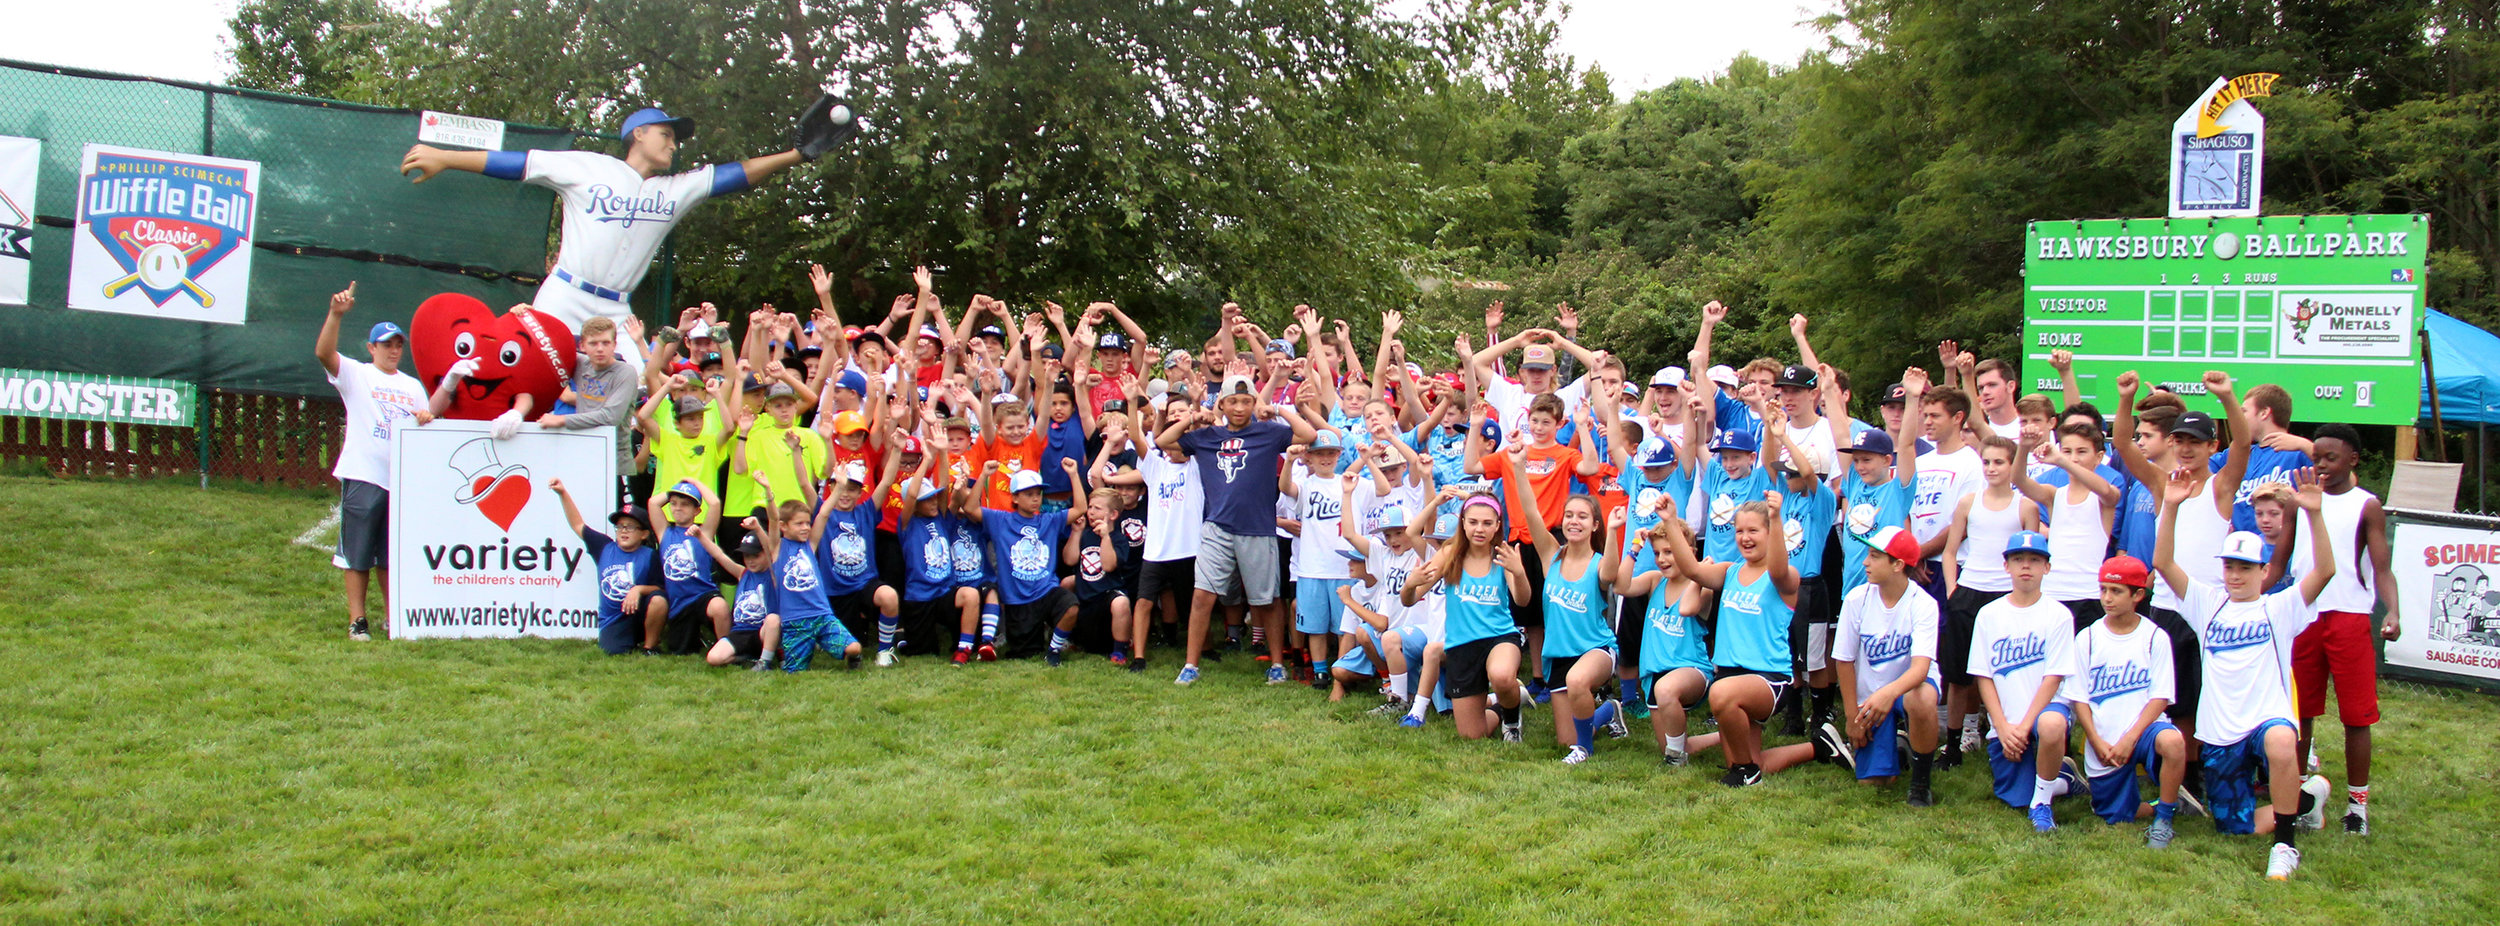 ROSS MARTIN/Citizen photo  Phillip Scimeca (center, standing in a dark blue shirt) poses with a photo of all the participants in the sixth annual Phillip Scimeca Wiffle Ball Classic, held Sunday, Sept. 4 in his neighborhood in Kansas City, Mo. Scimeca, a senior at Platte County, started the event in 2011 in an effort to raise money for victims of the Joplin tornado, and the tournament has grown each year.